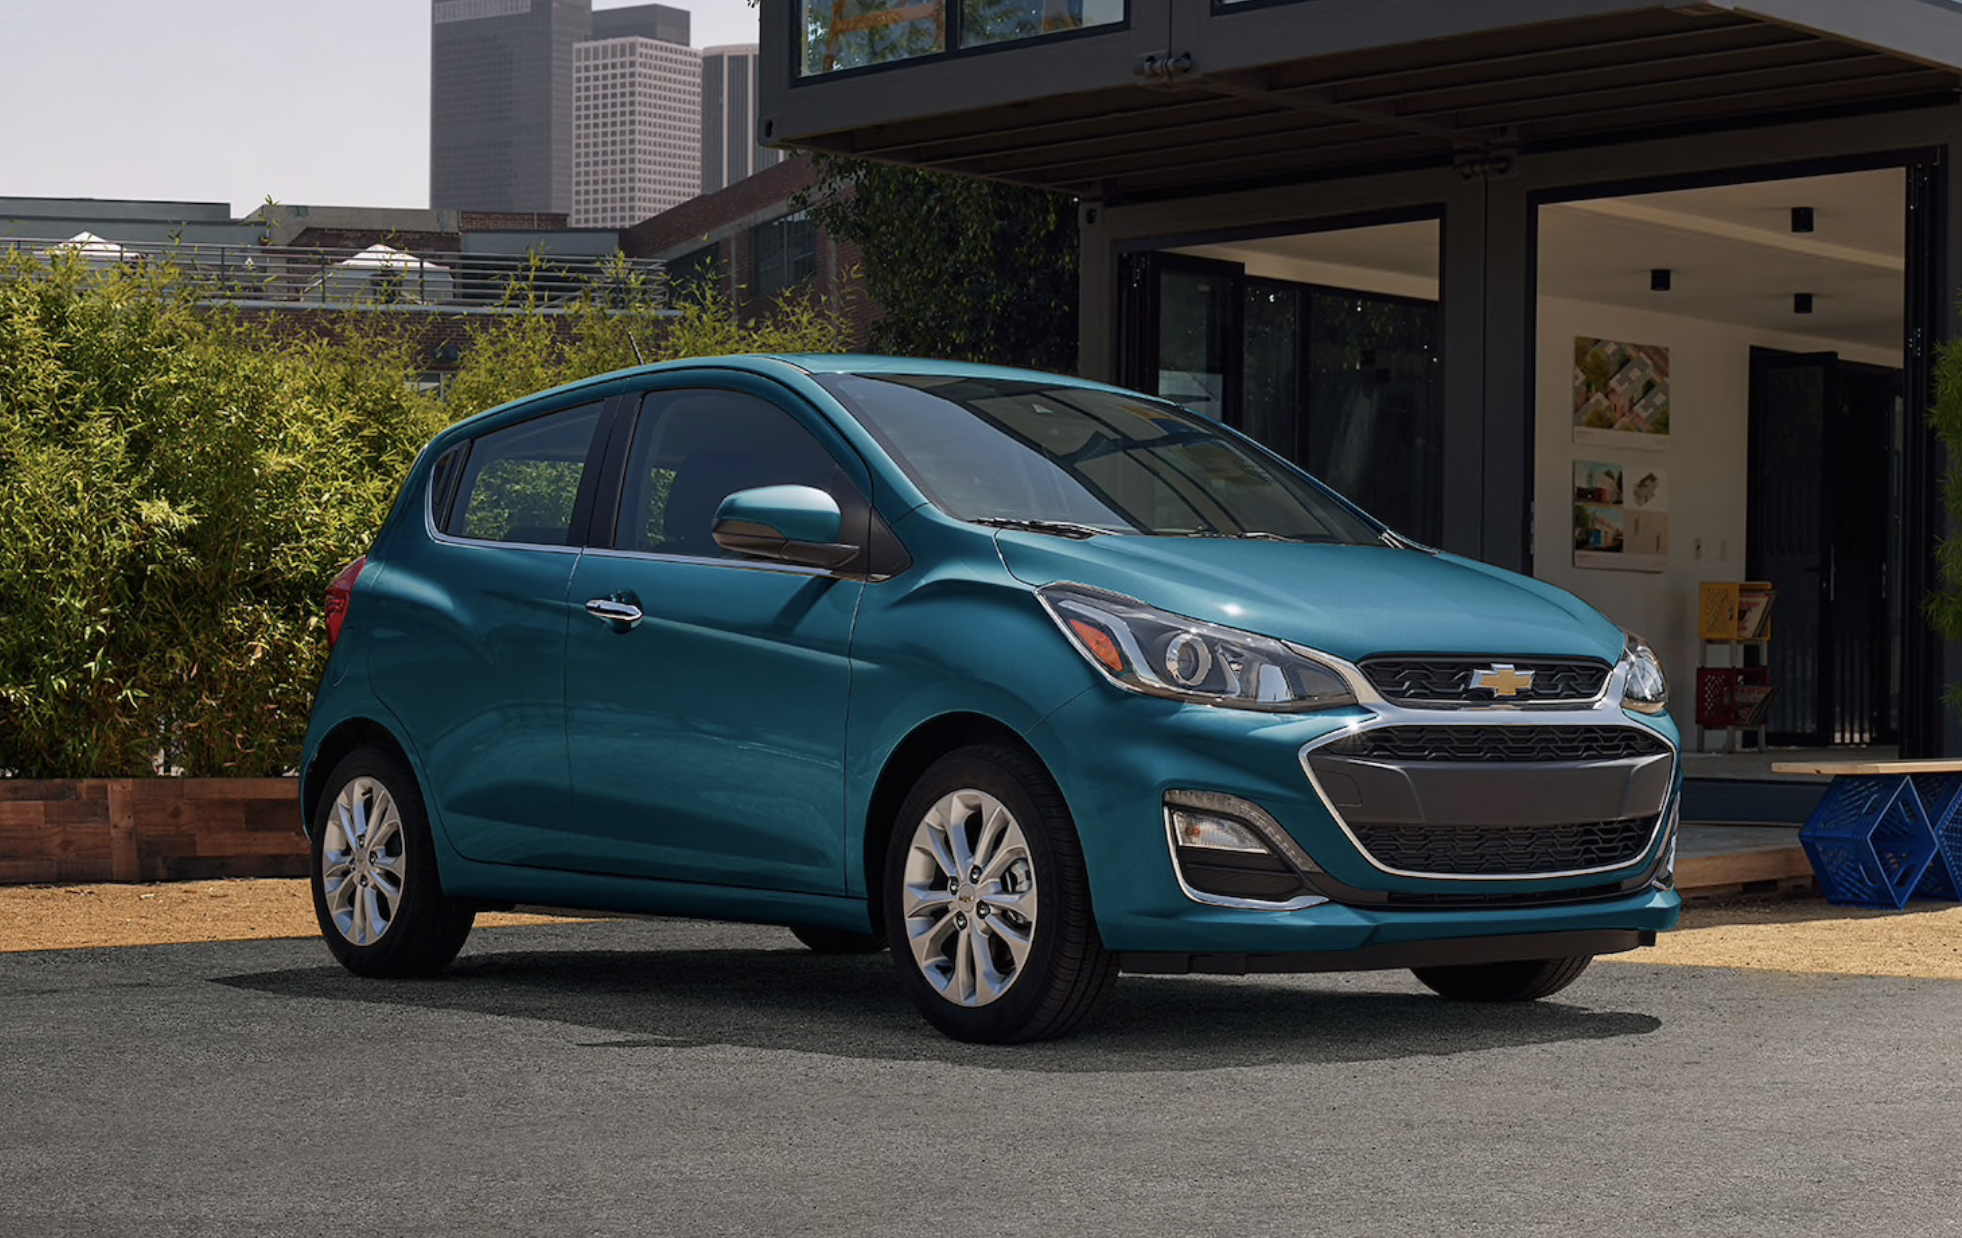 Chevrolet Spark Wake Forest